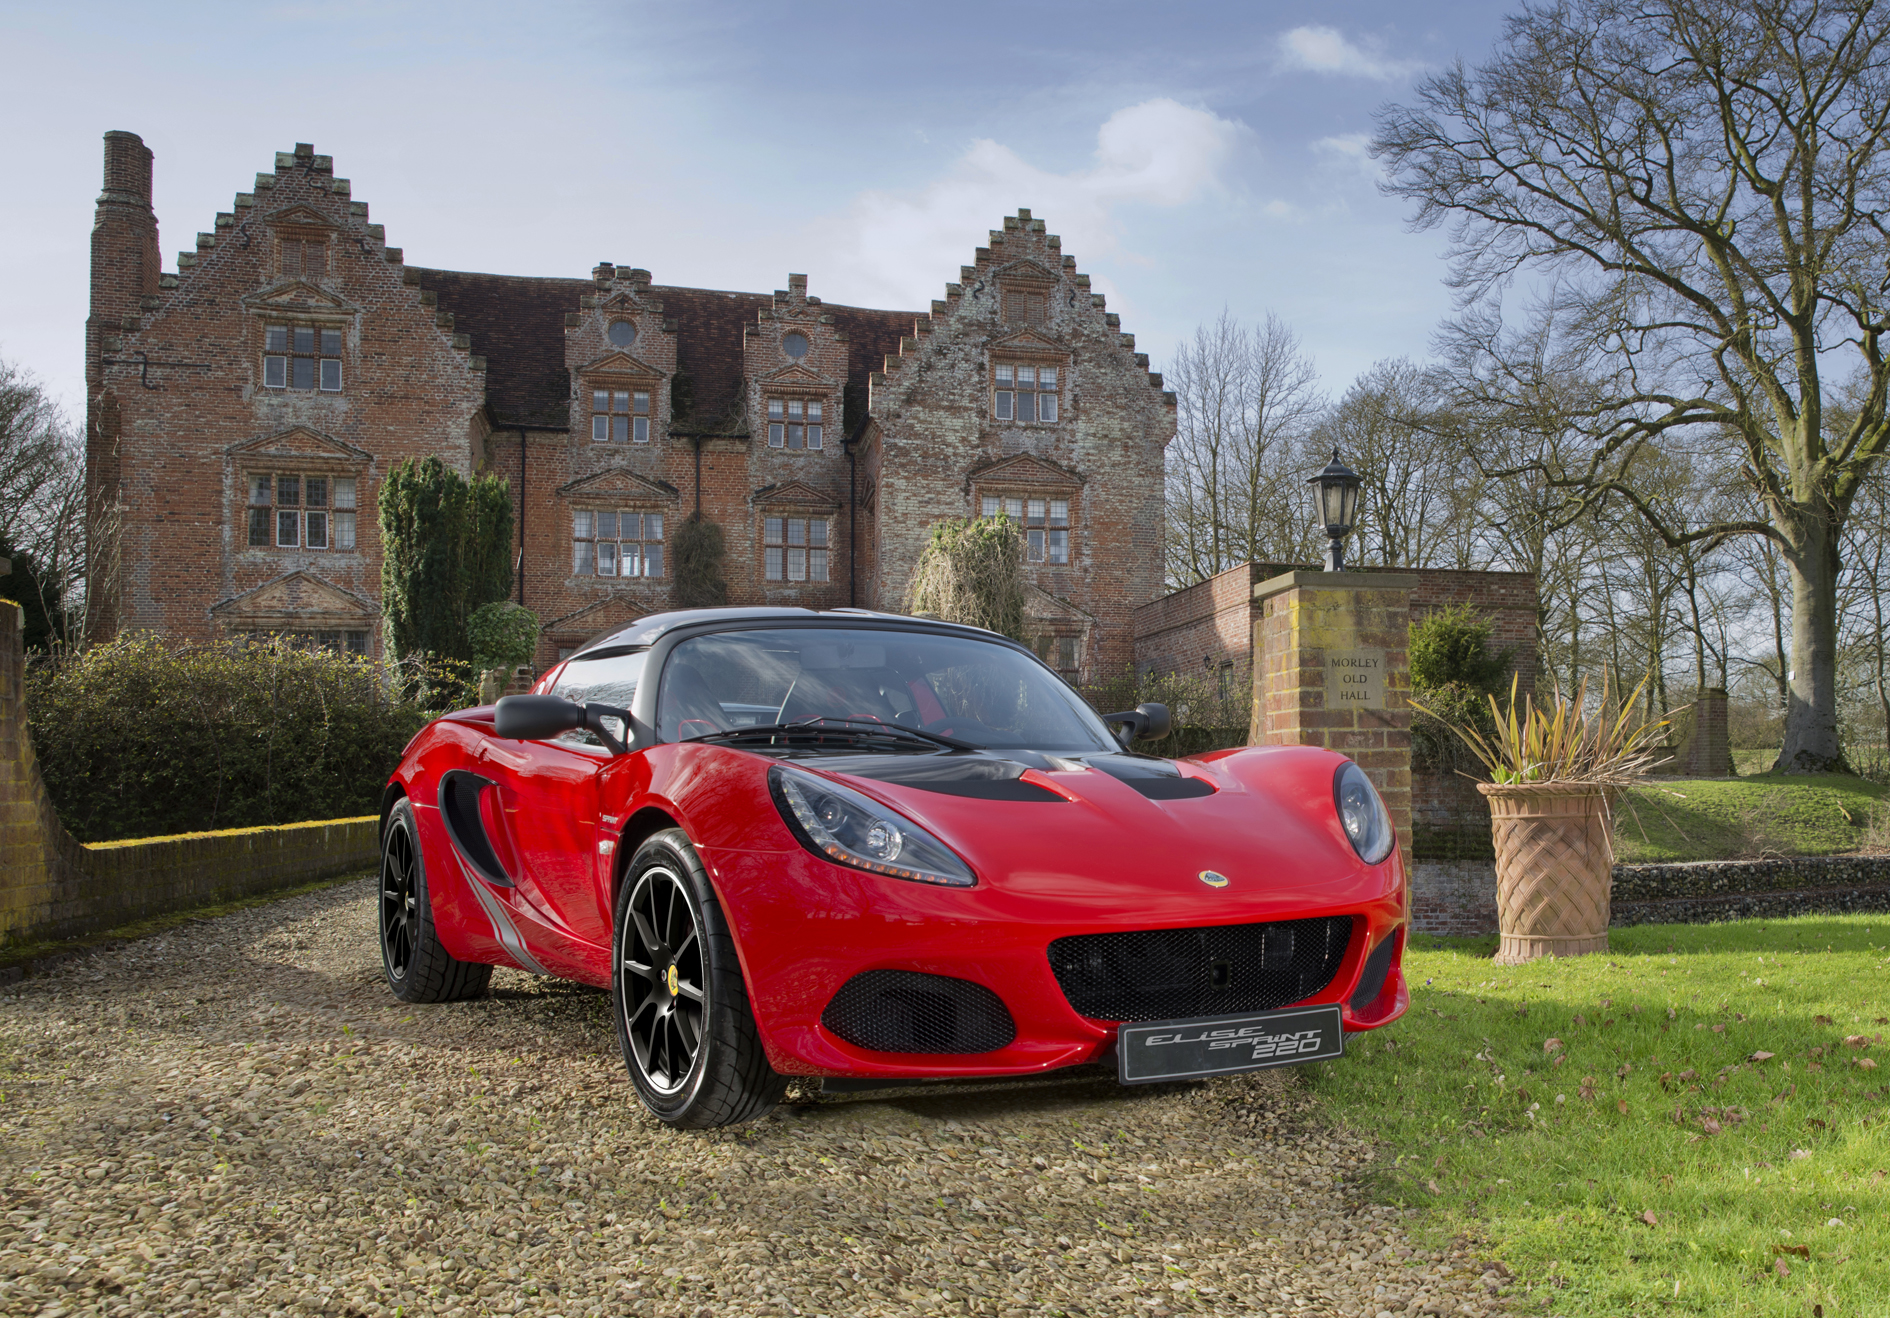 The lightest Elise ever – the new Lotus Elise Sprint